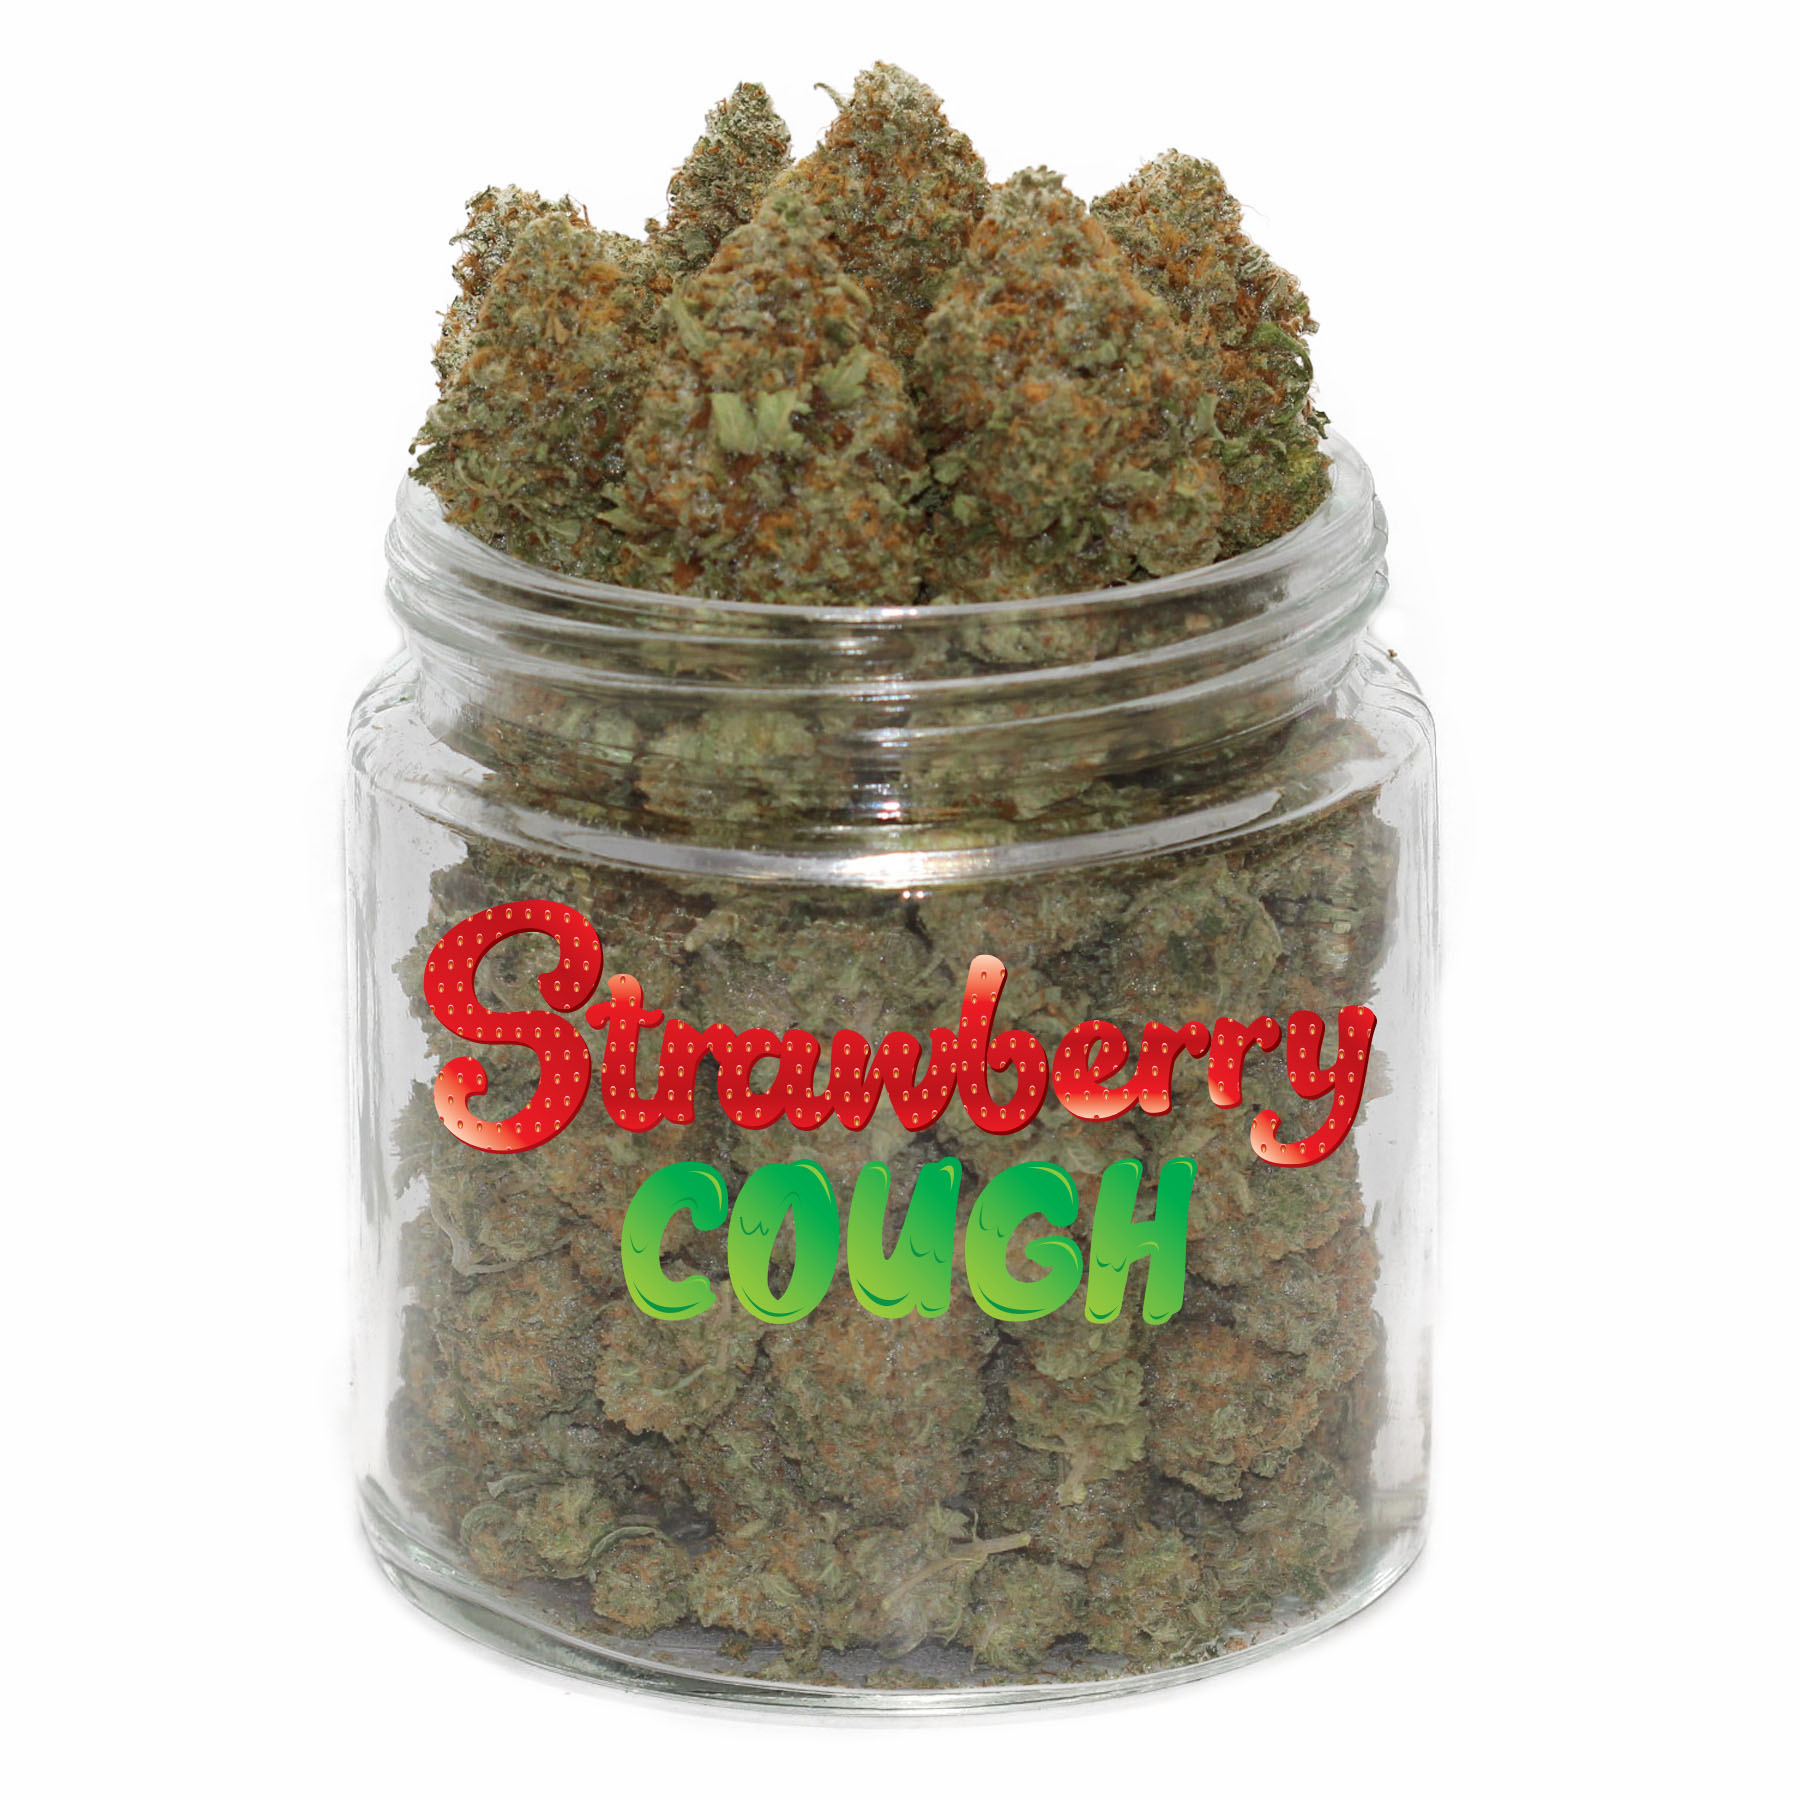 Strawberry Cough by Get Kush - Image © 2018 Get Kush. All Rights Reserved.